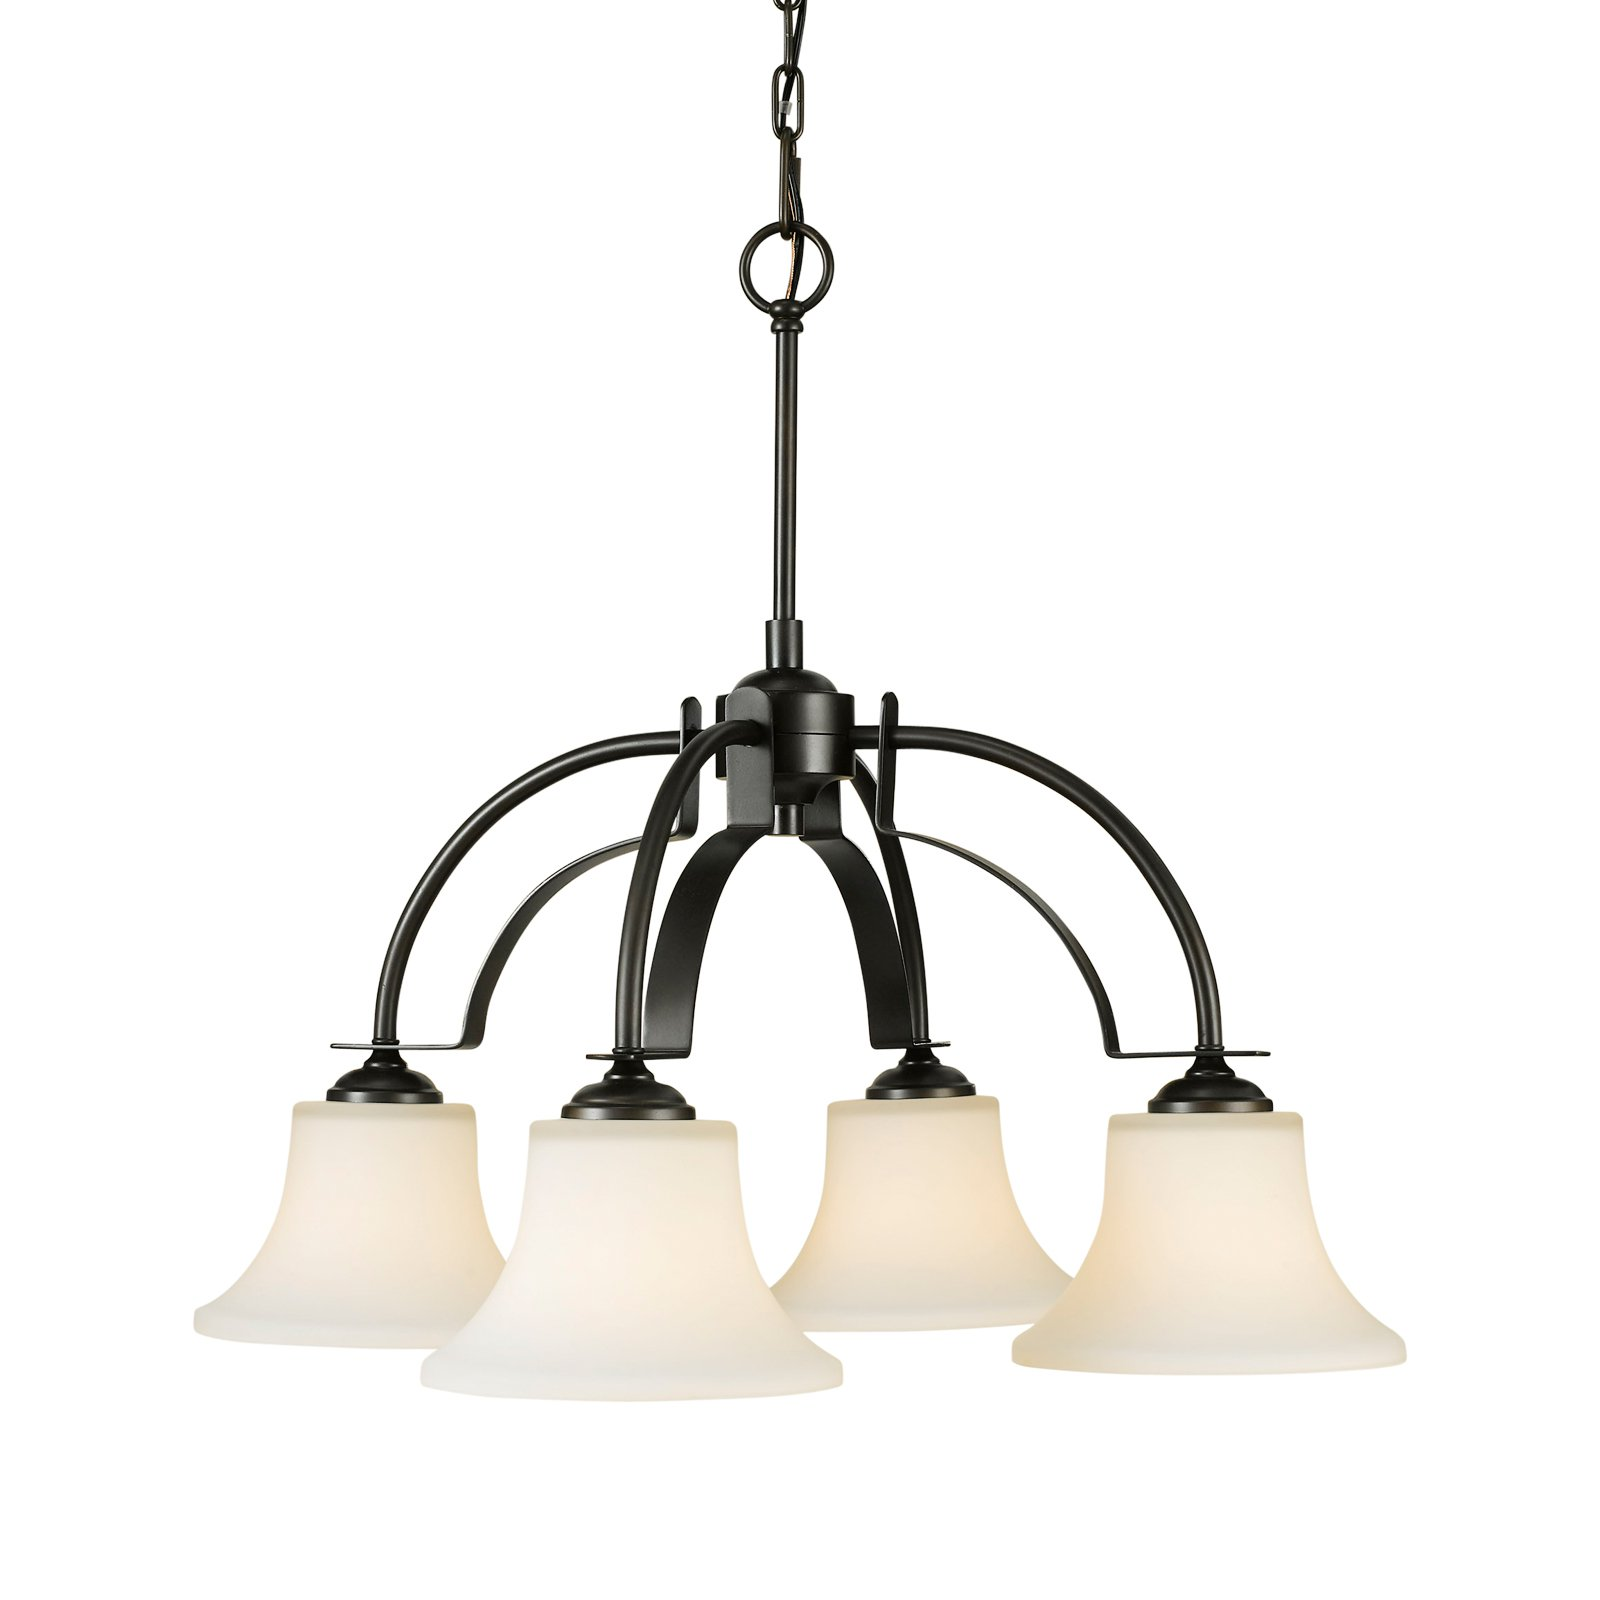 Feiss Barrington Chandelier 26W in. Oil Rubbed Bronze by Murray Feiss